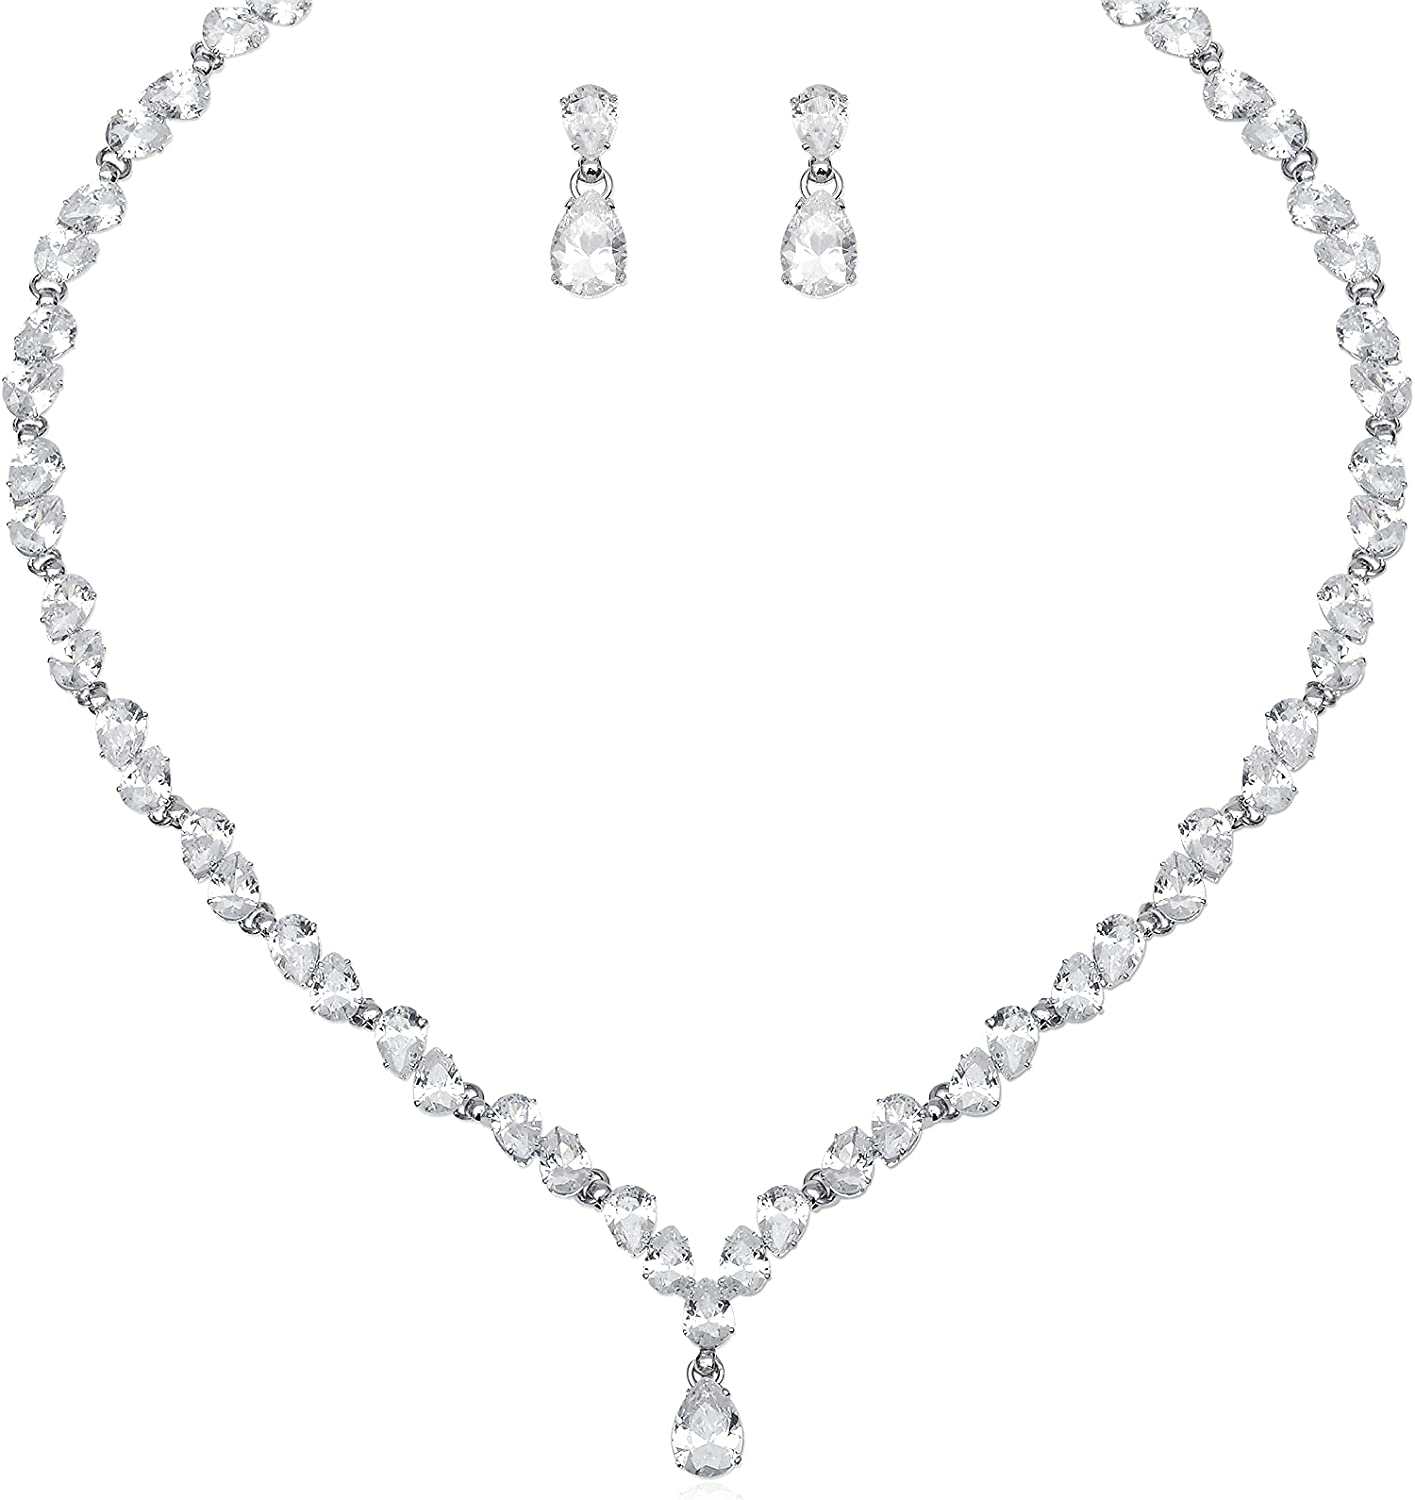 Gorgeous Women's White Cubic Zirconia Bridal Choker Necklace CZ Crystal Earrings Wedding Jewelry Sets for Brides Bridesmaids